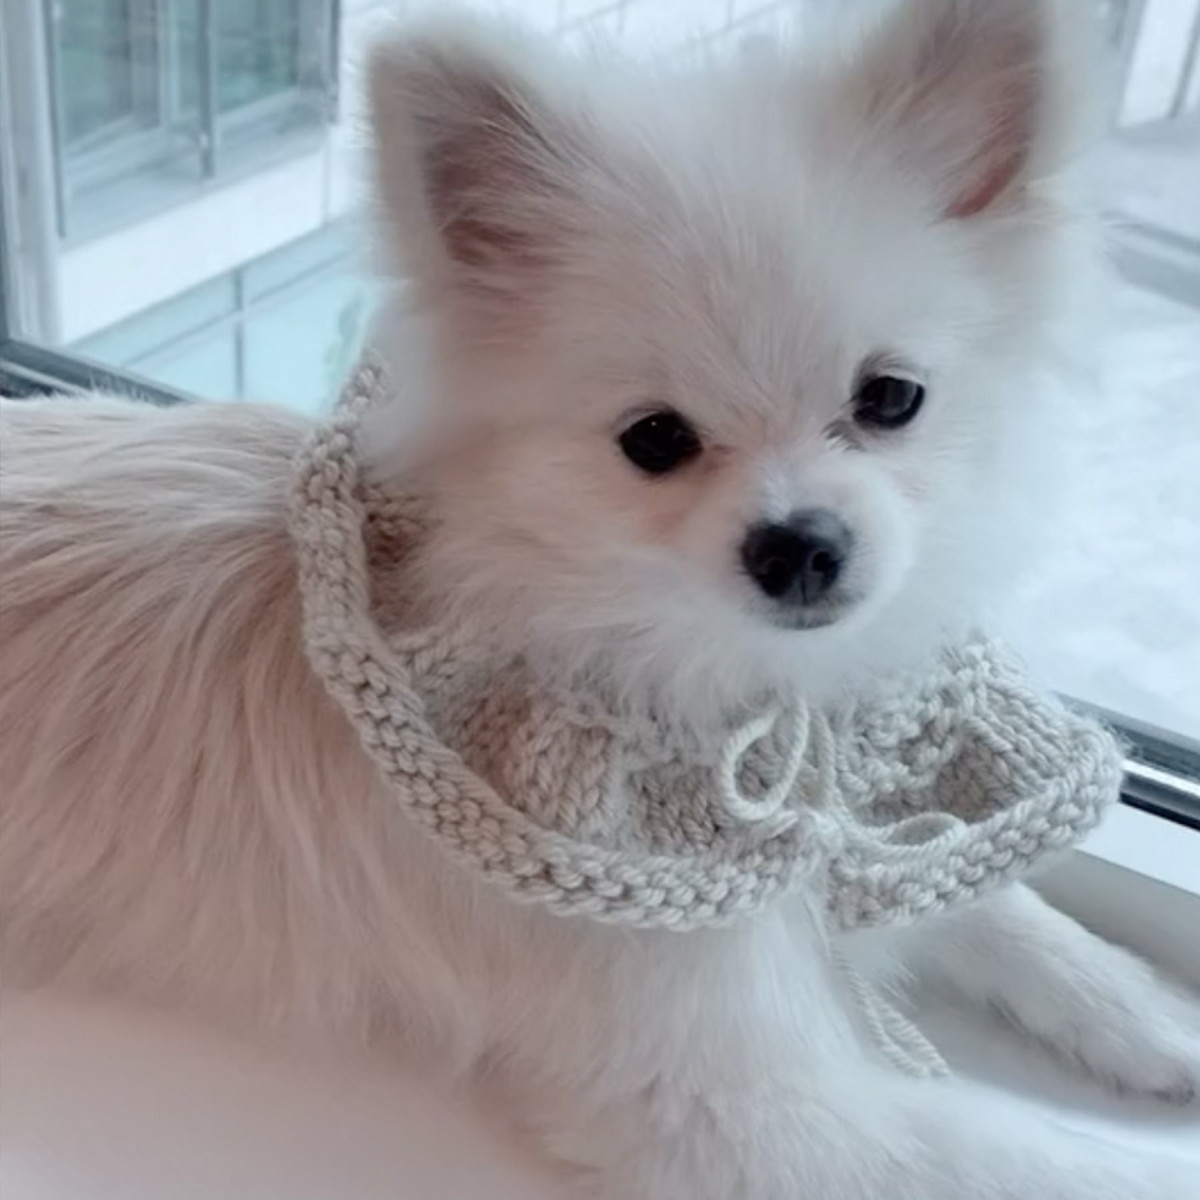 At Home with Wild & Gorgeous - Handmade Knit Collar